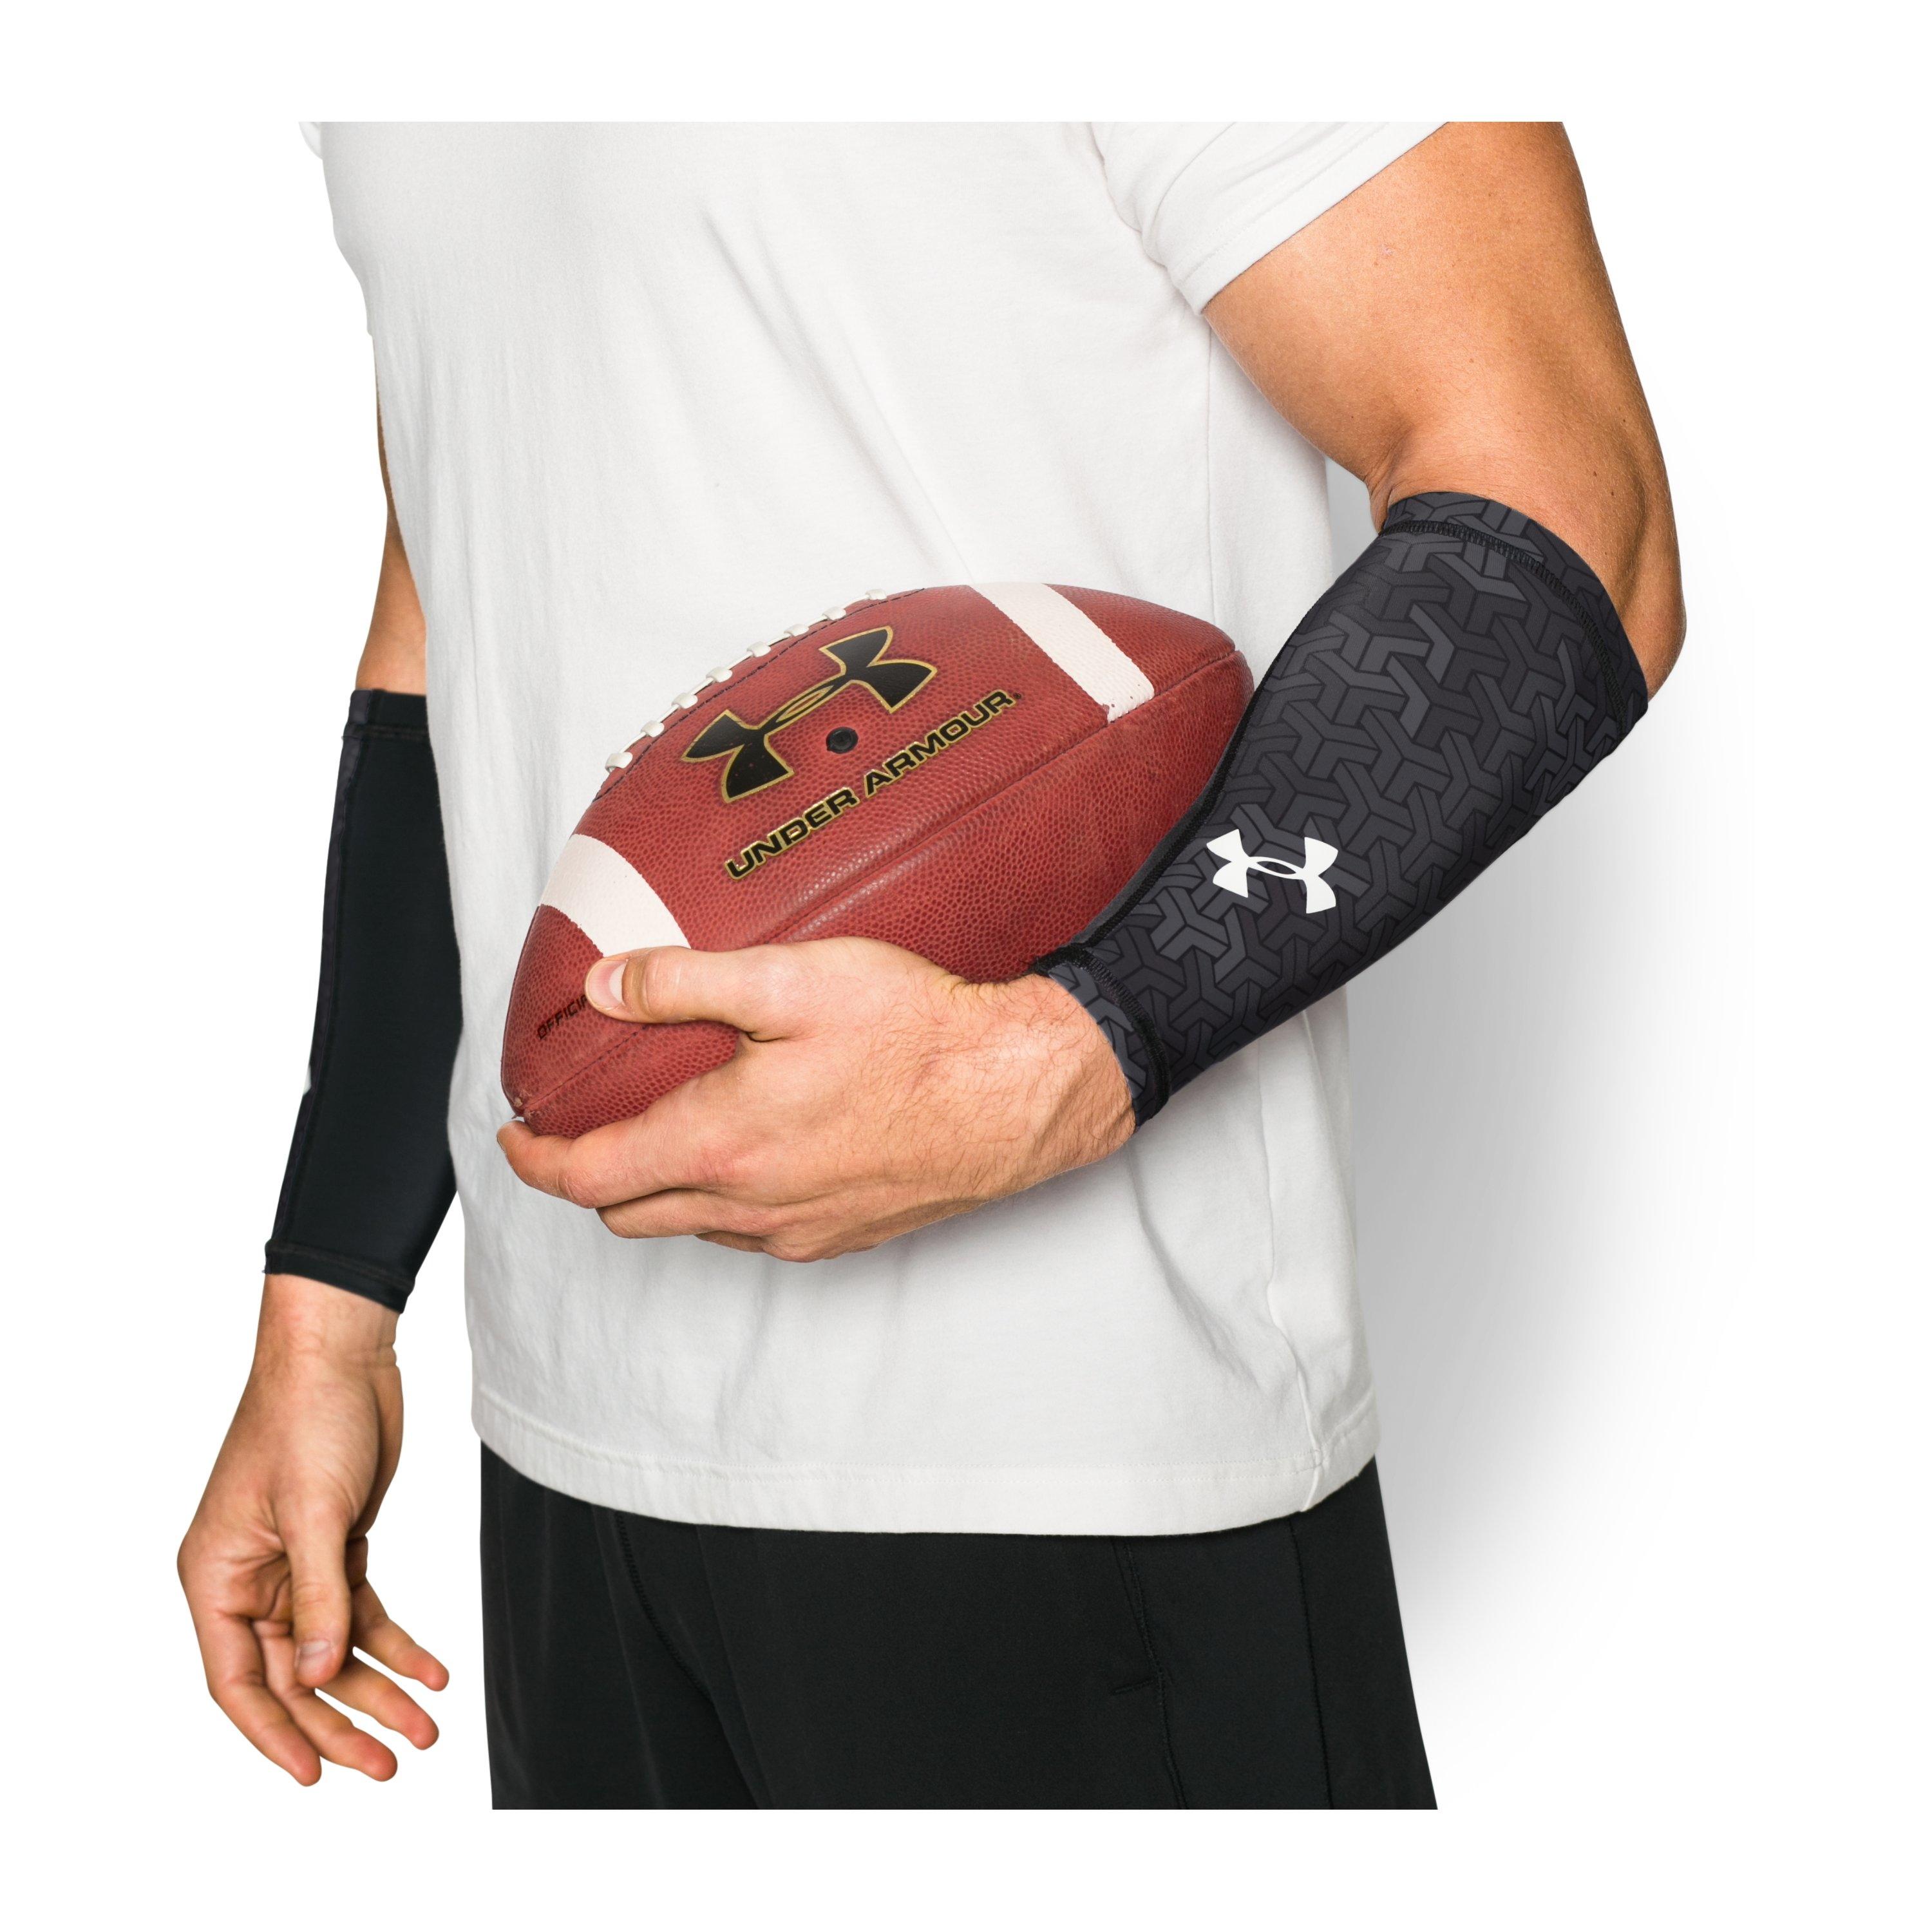 Lyst - Under Armour Men s Ua Trion Camo Forearm Shiver in Black for Men 1b21f3c8f